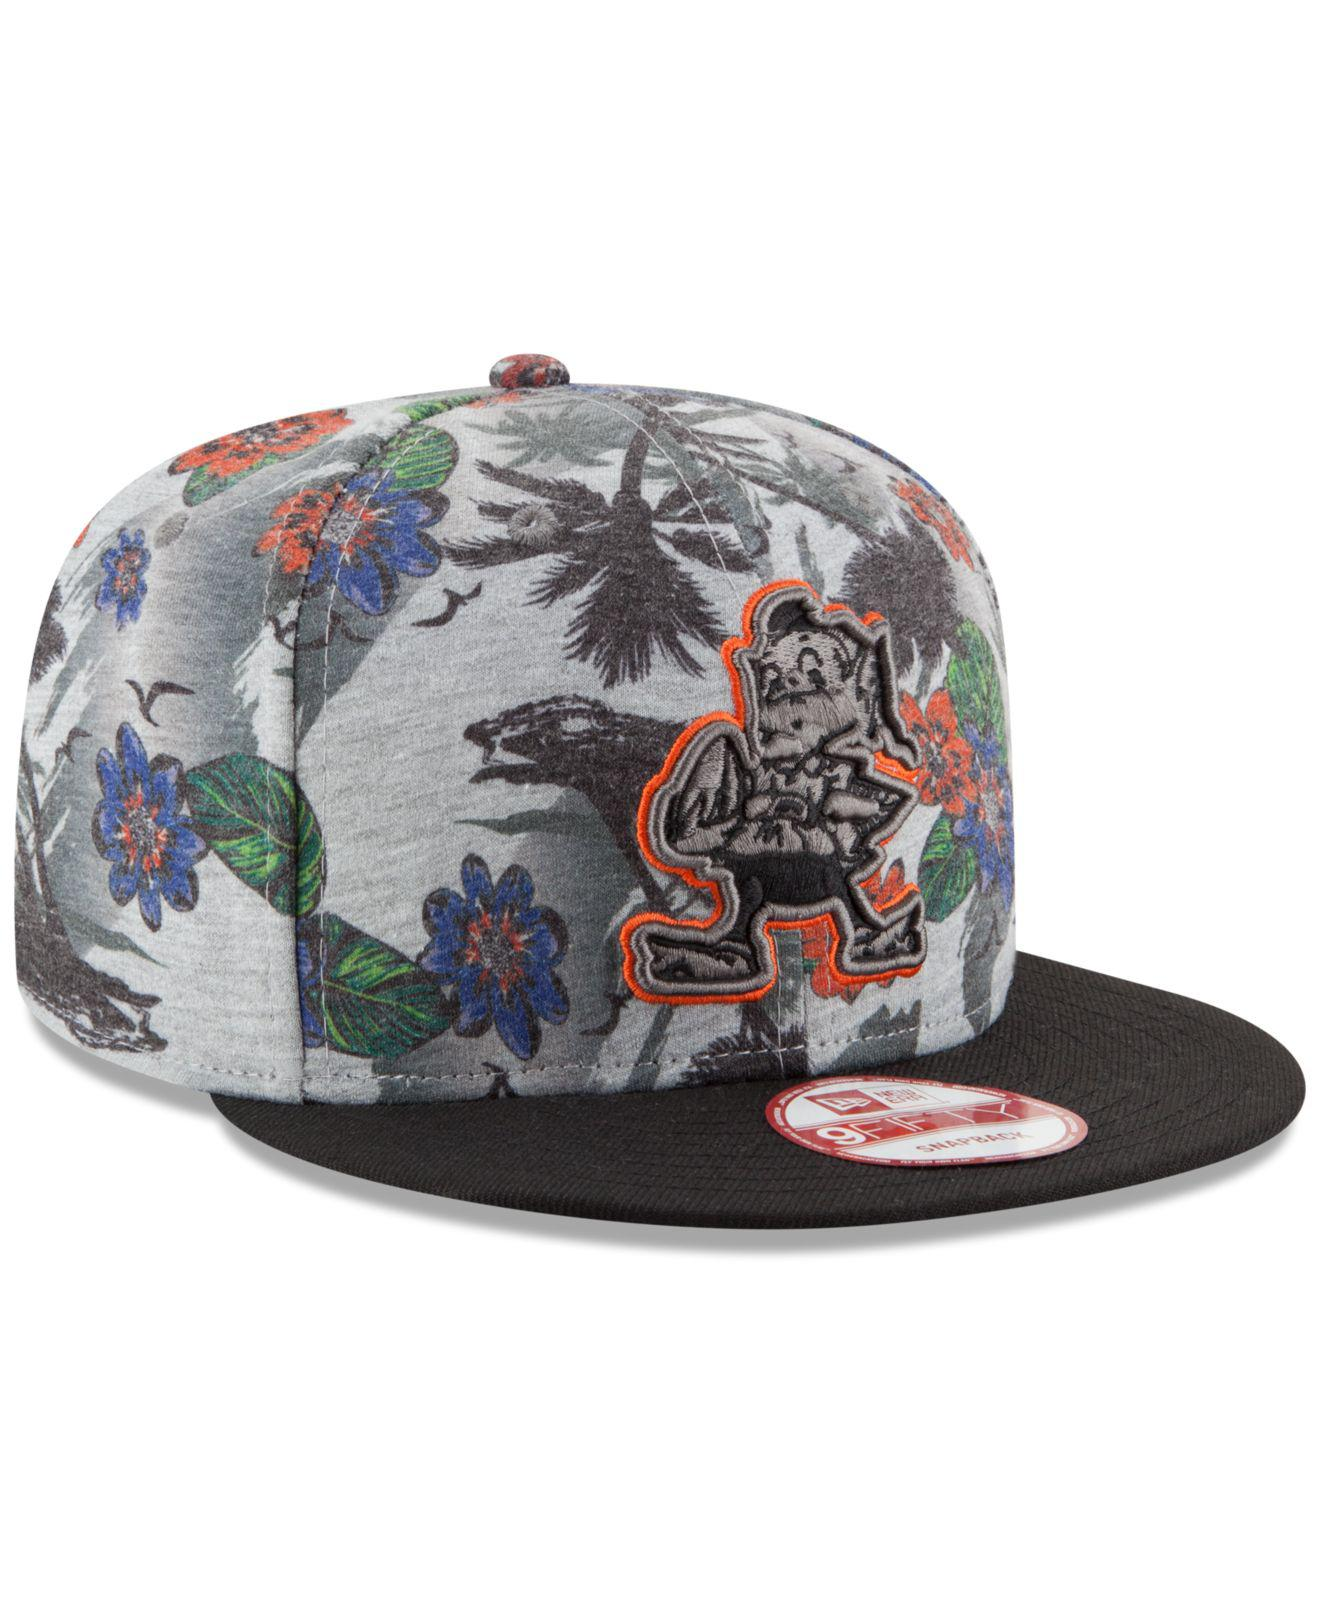 new product 834d1 477e5 ... ebay lyst ktz cleveland browns cool breeze trop 9fifty snapback cap in  cbf6b 91725